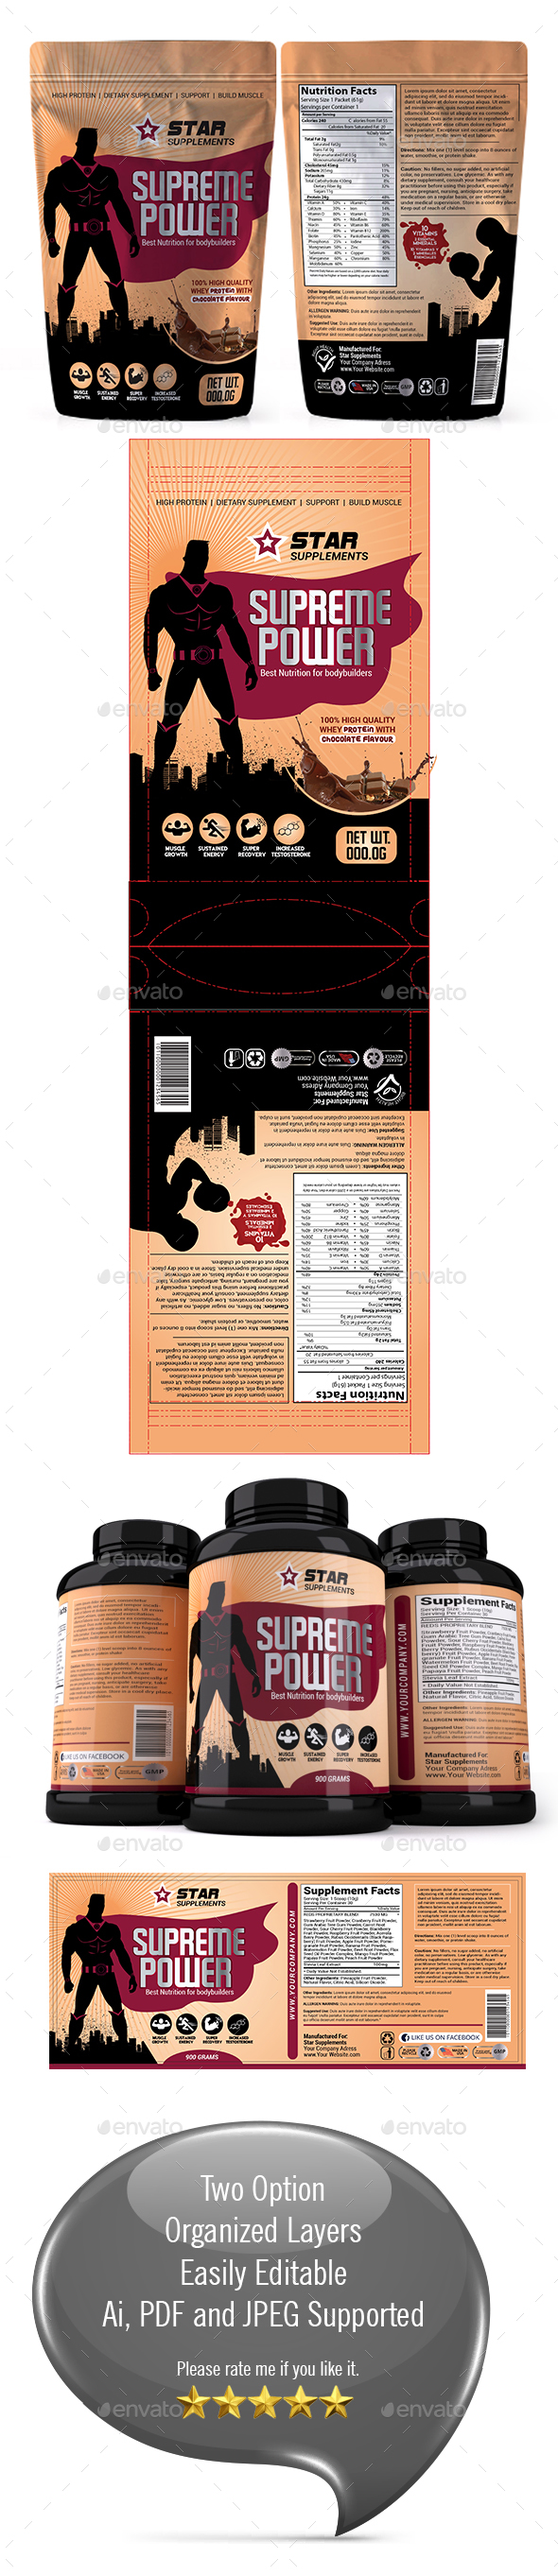 Supplement Packaging Template 02 - Packaging Print Templates